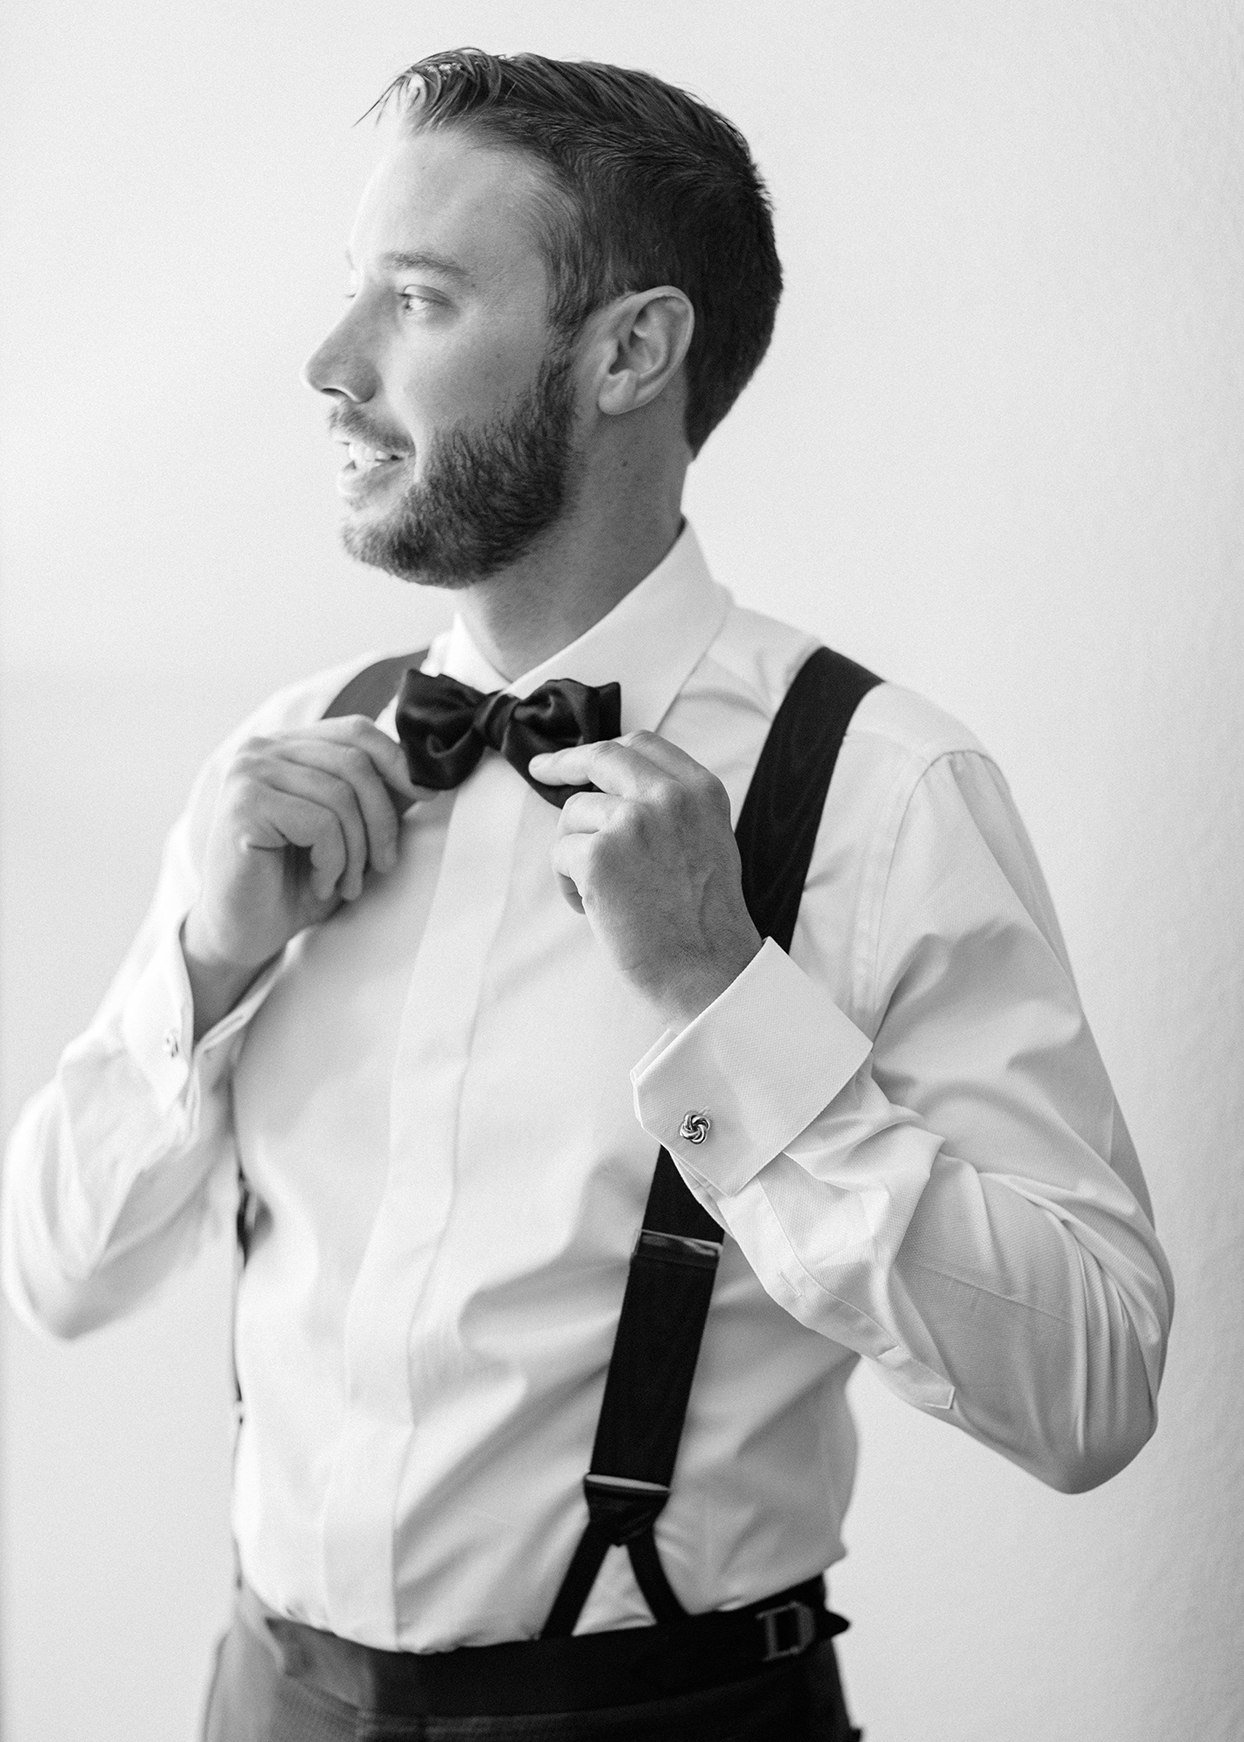 groom fixing bowtie into his wedding outfit